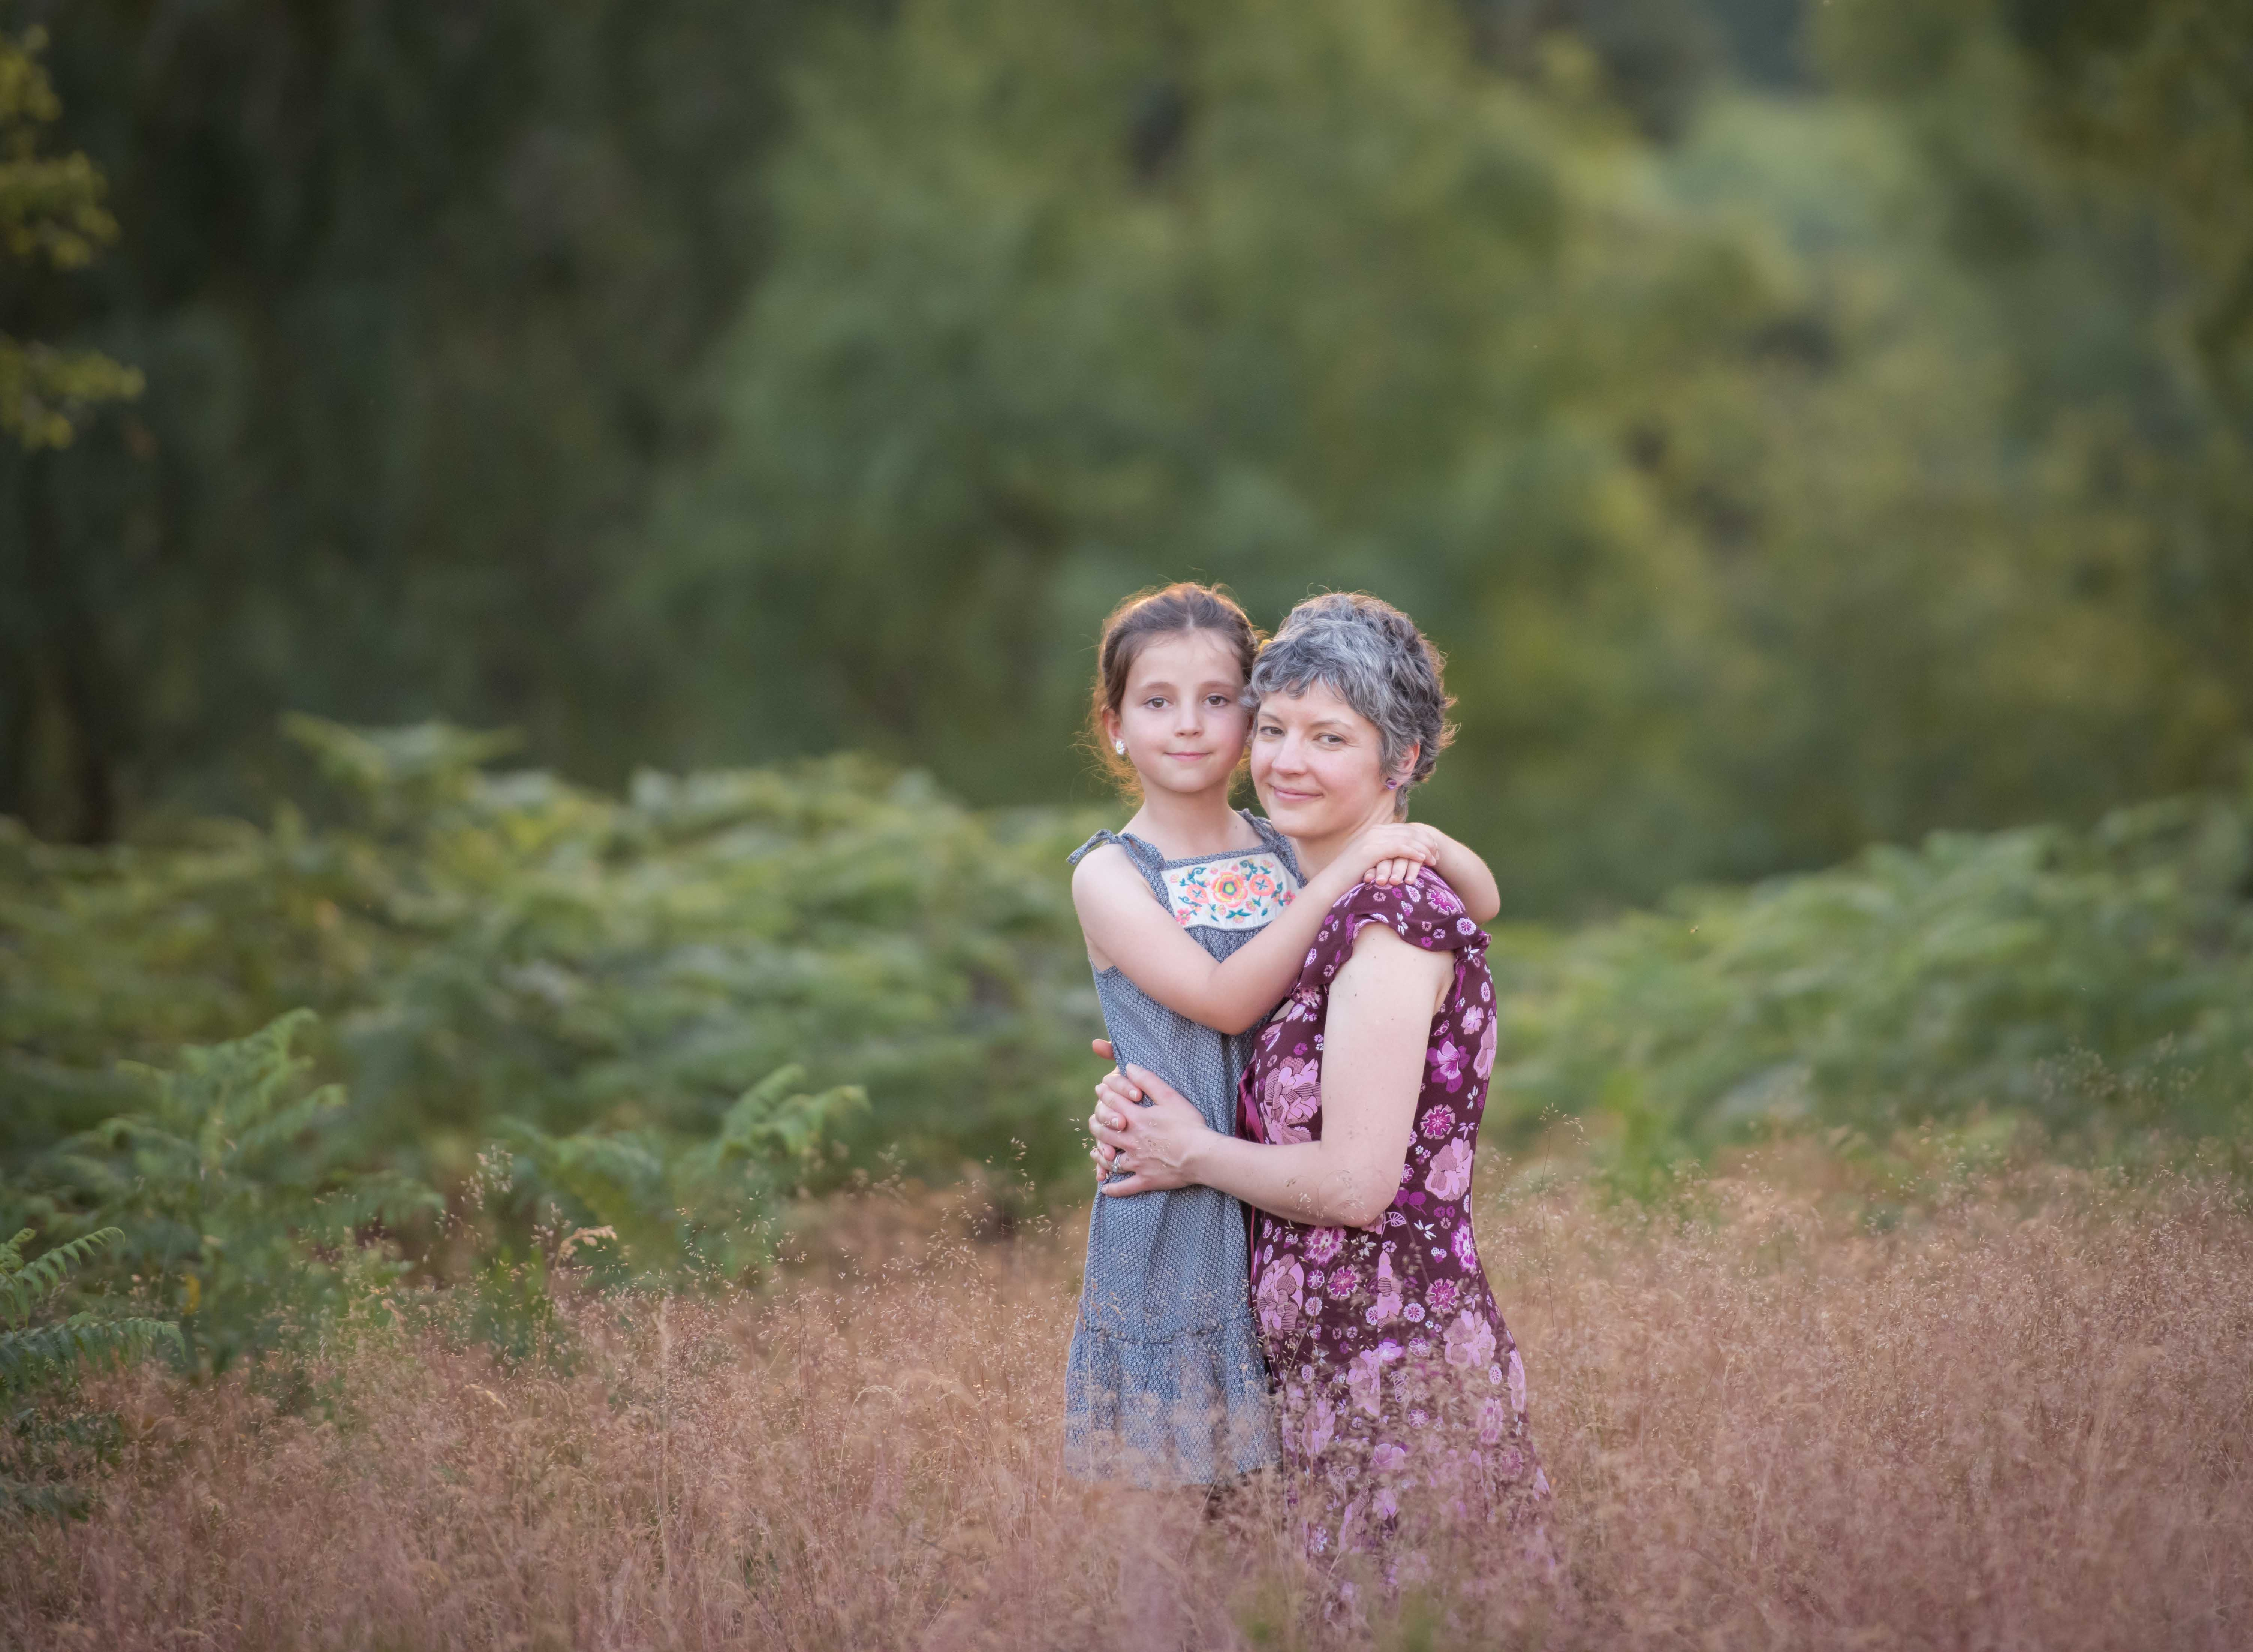 Family photo shoot with mother and daughter